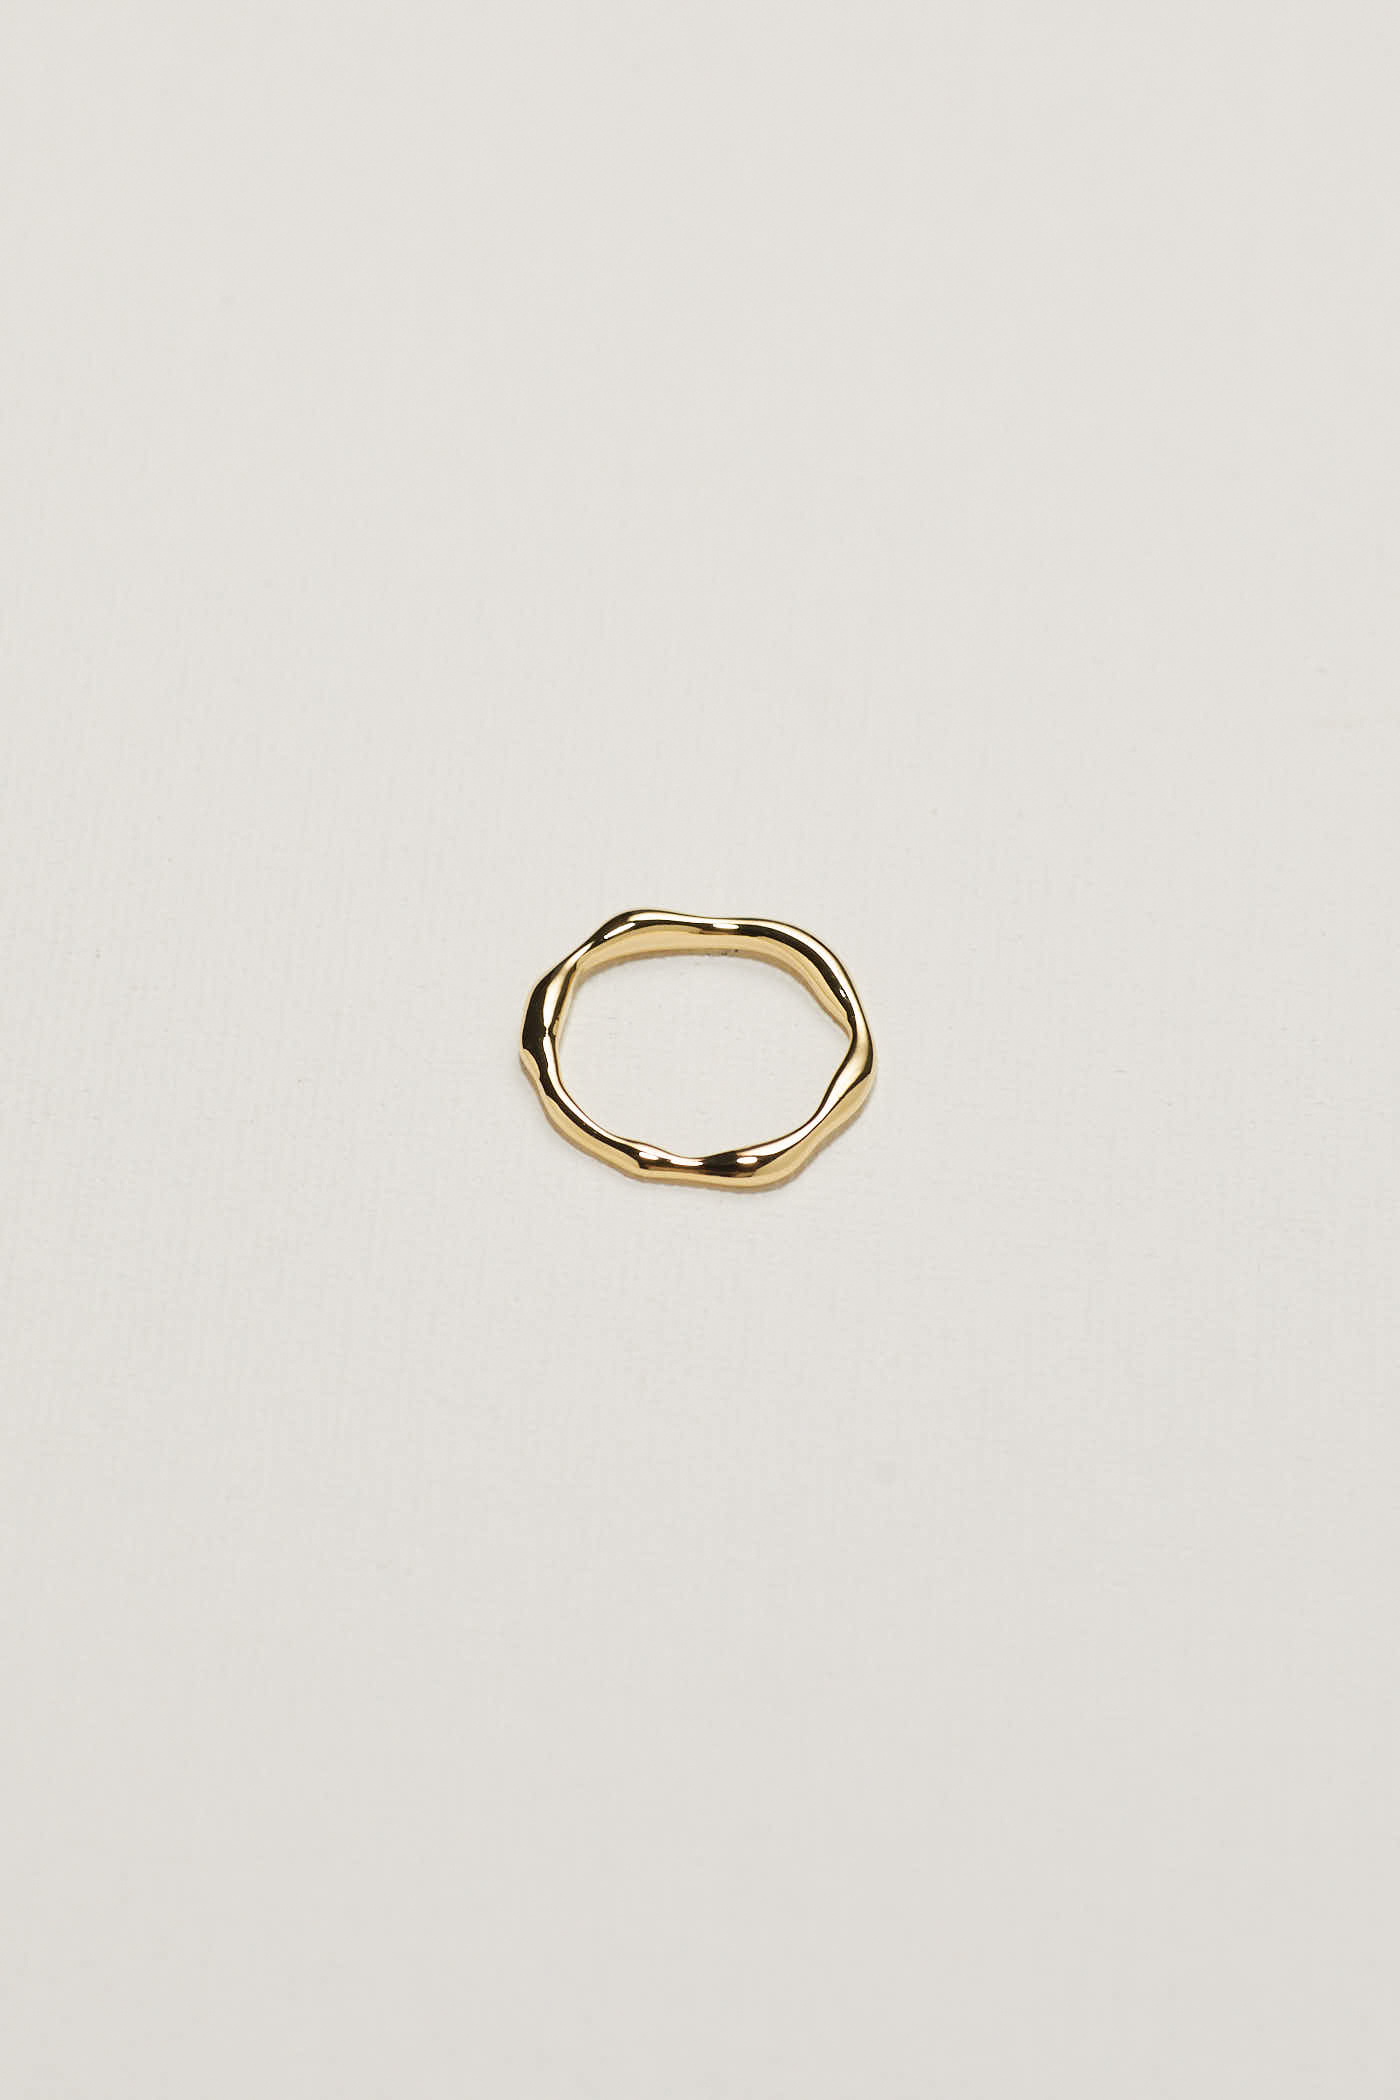 Joie Ring